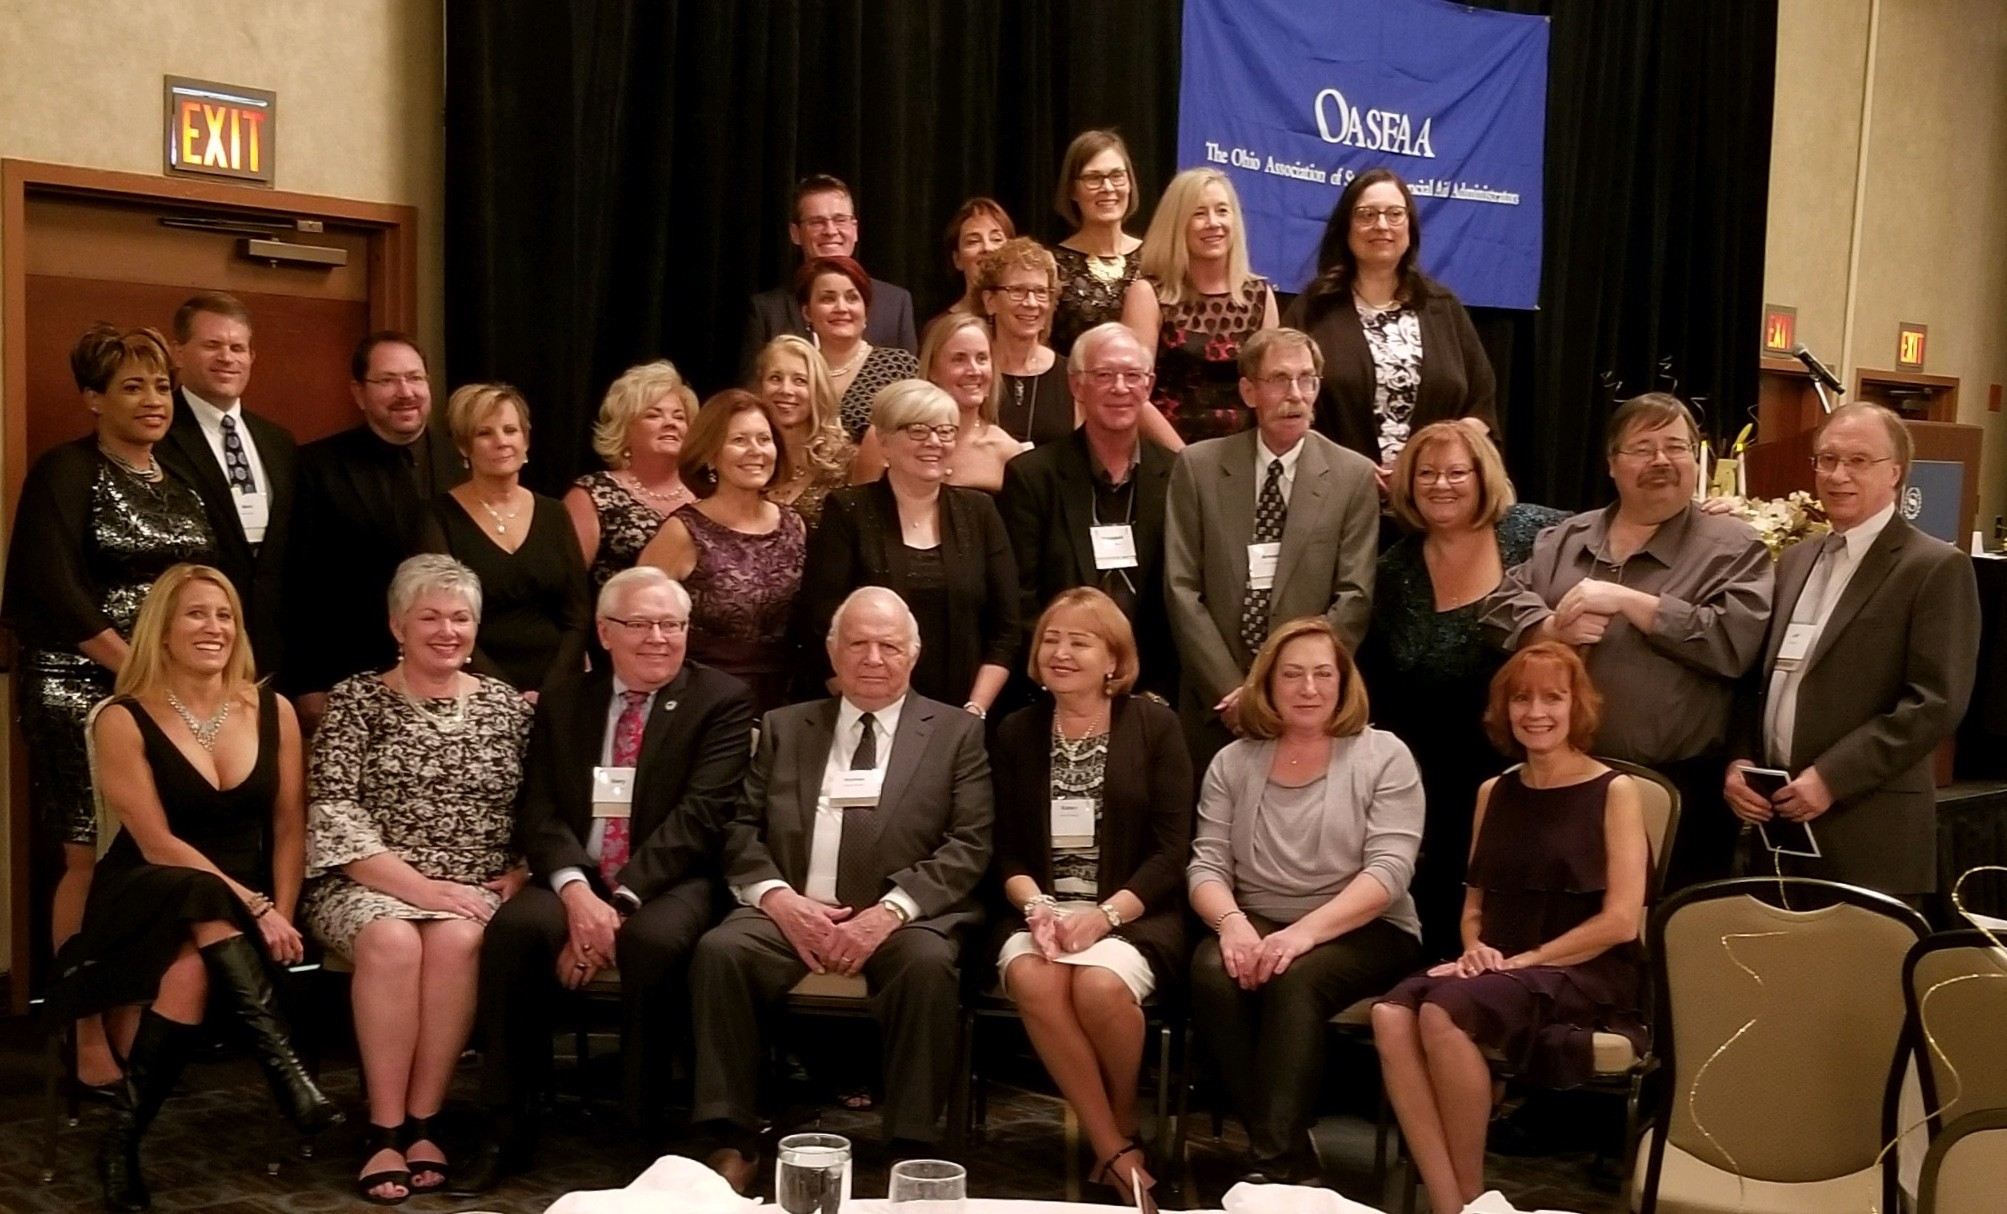 OASFAA's Past Presidents in attendance at the 50th Anniversary Conference, October 2018